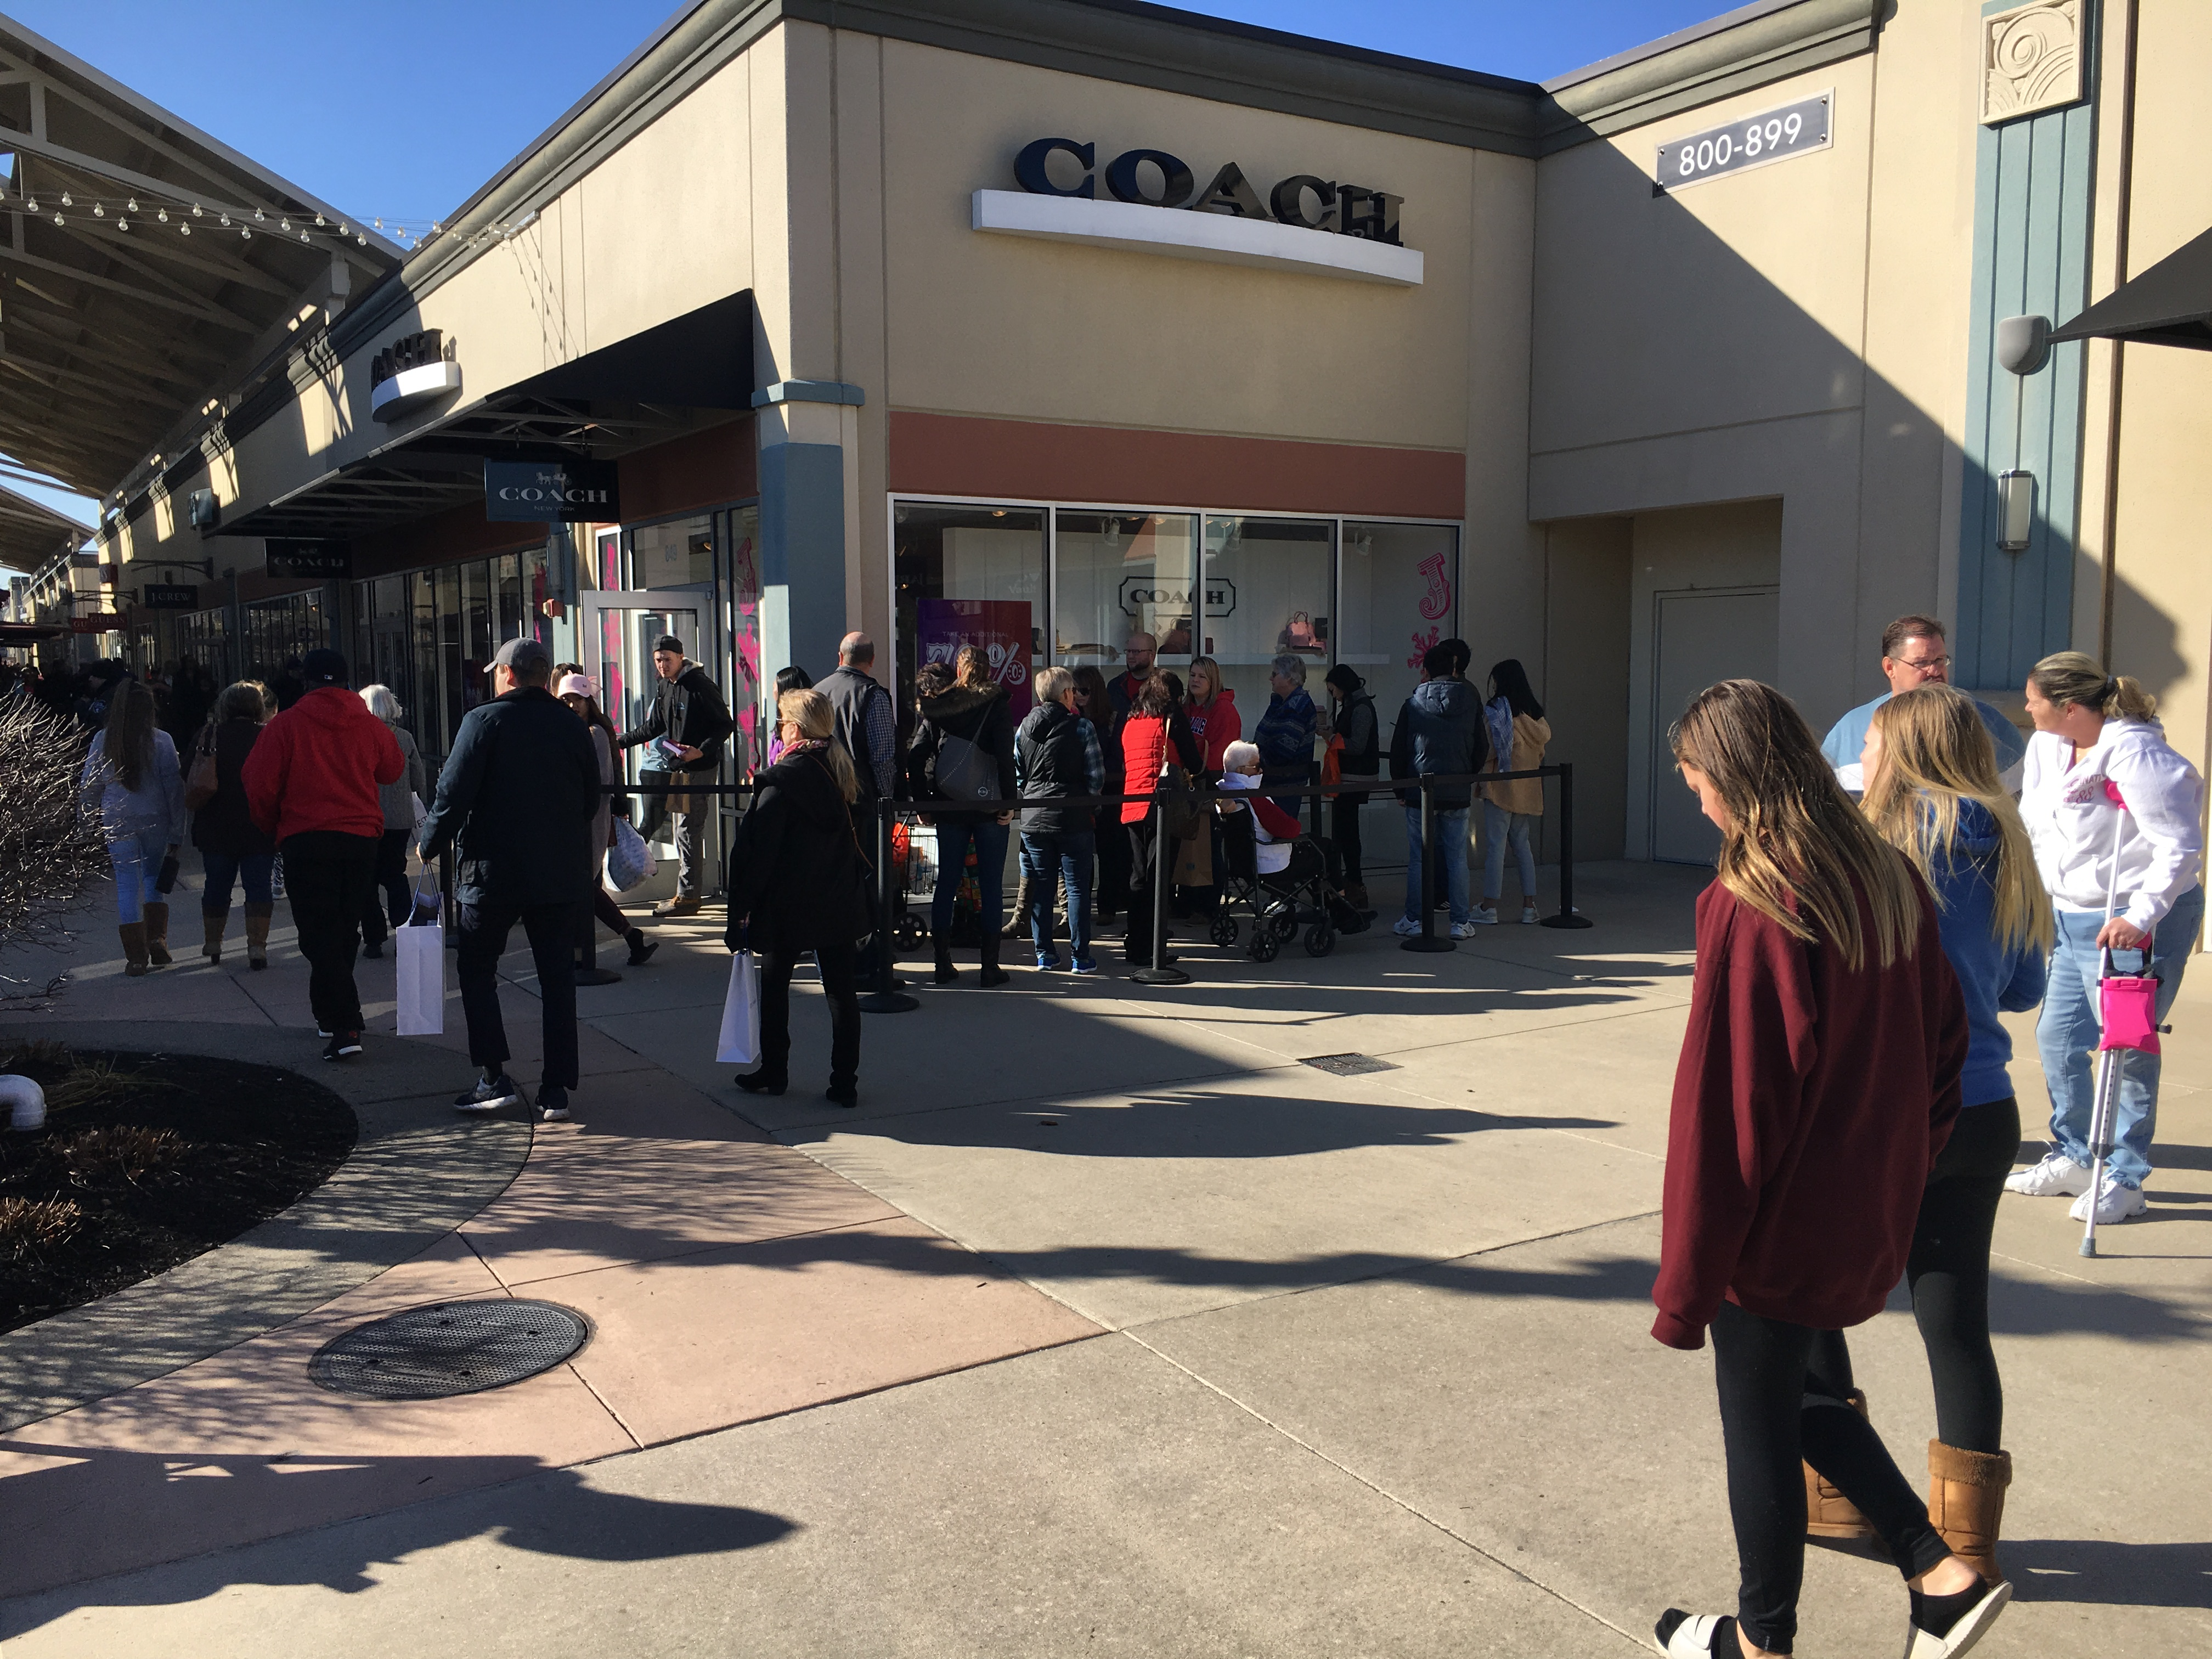 outlet shops with discounted holiday gifts